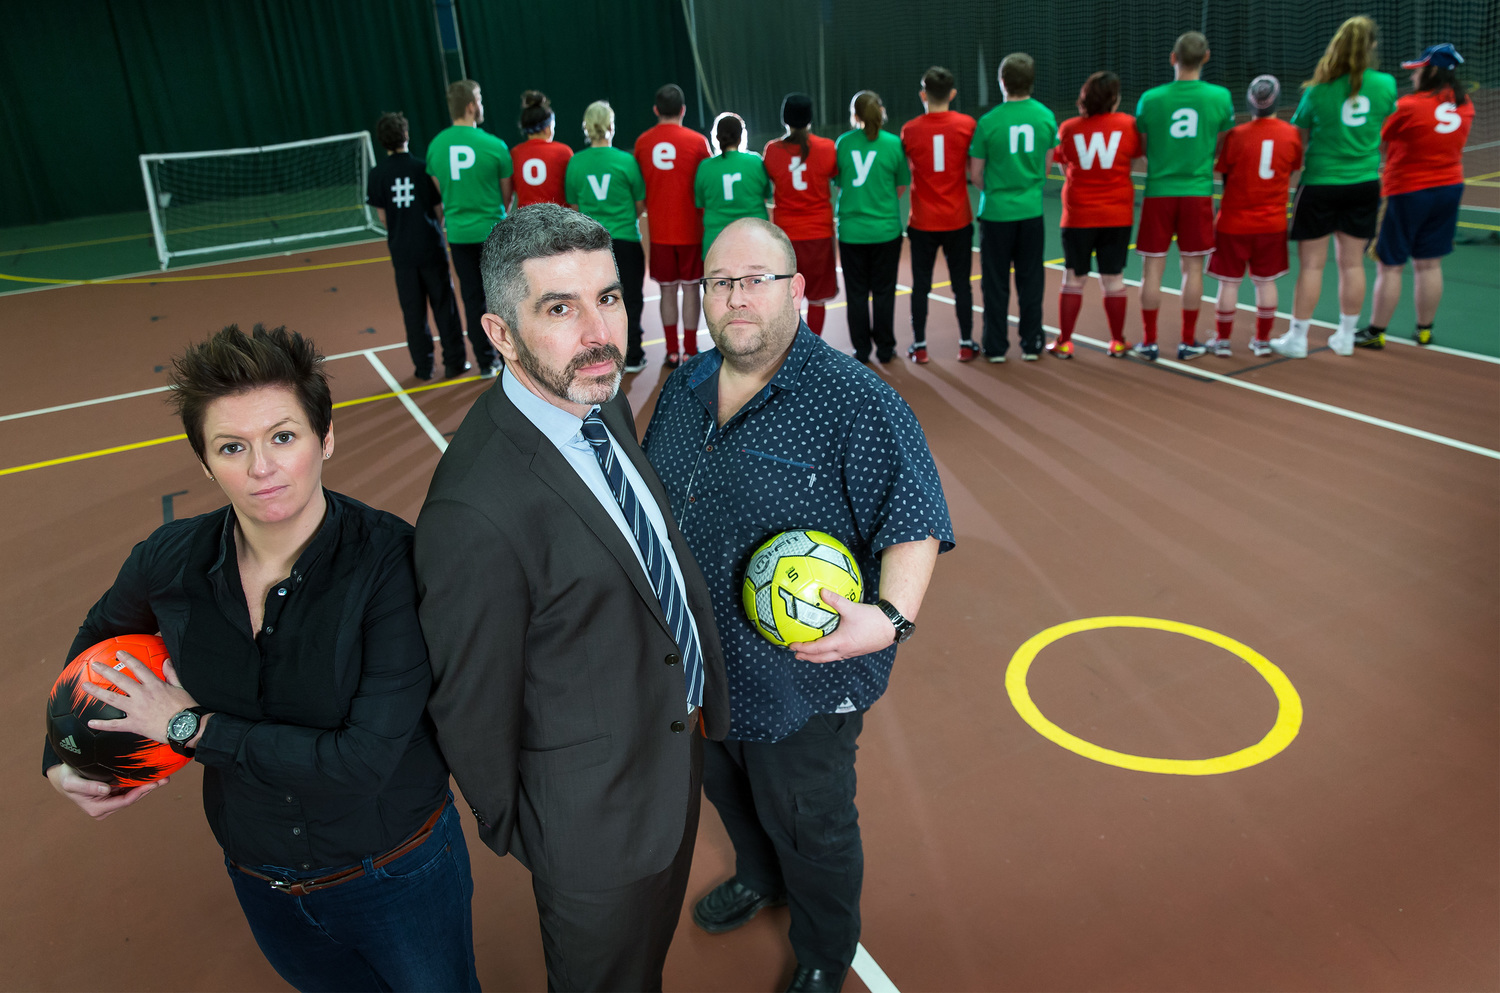 left to right: kelly davies, ceo & founder of vi-ability, derek walker ceo of wales co-operative centre and keri harris, manager of street football wales.